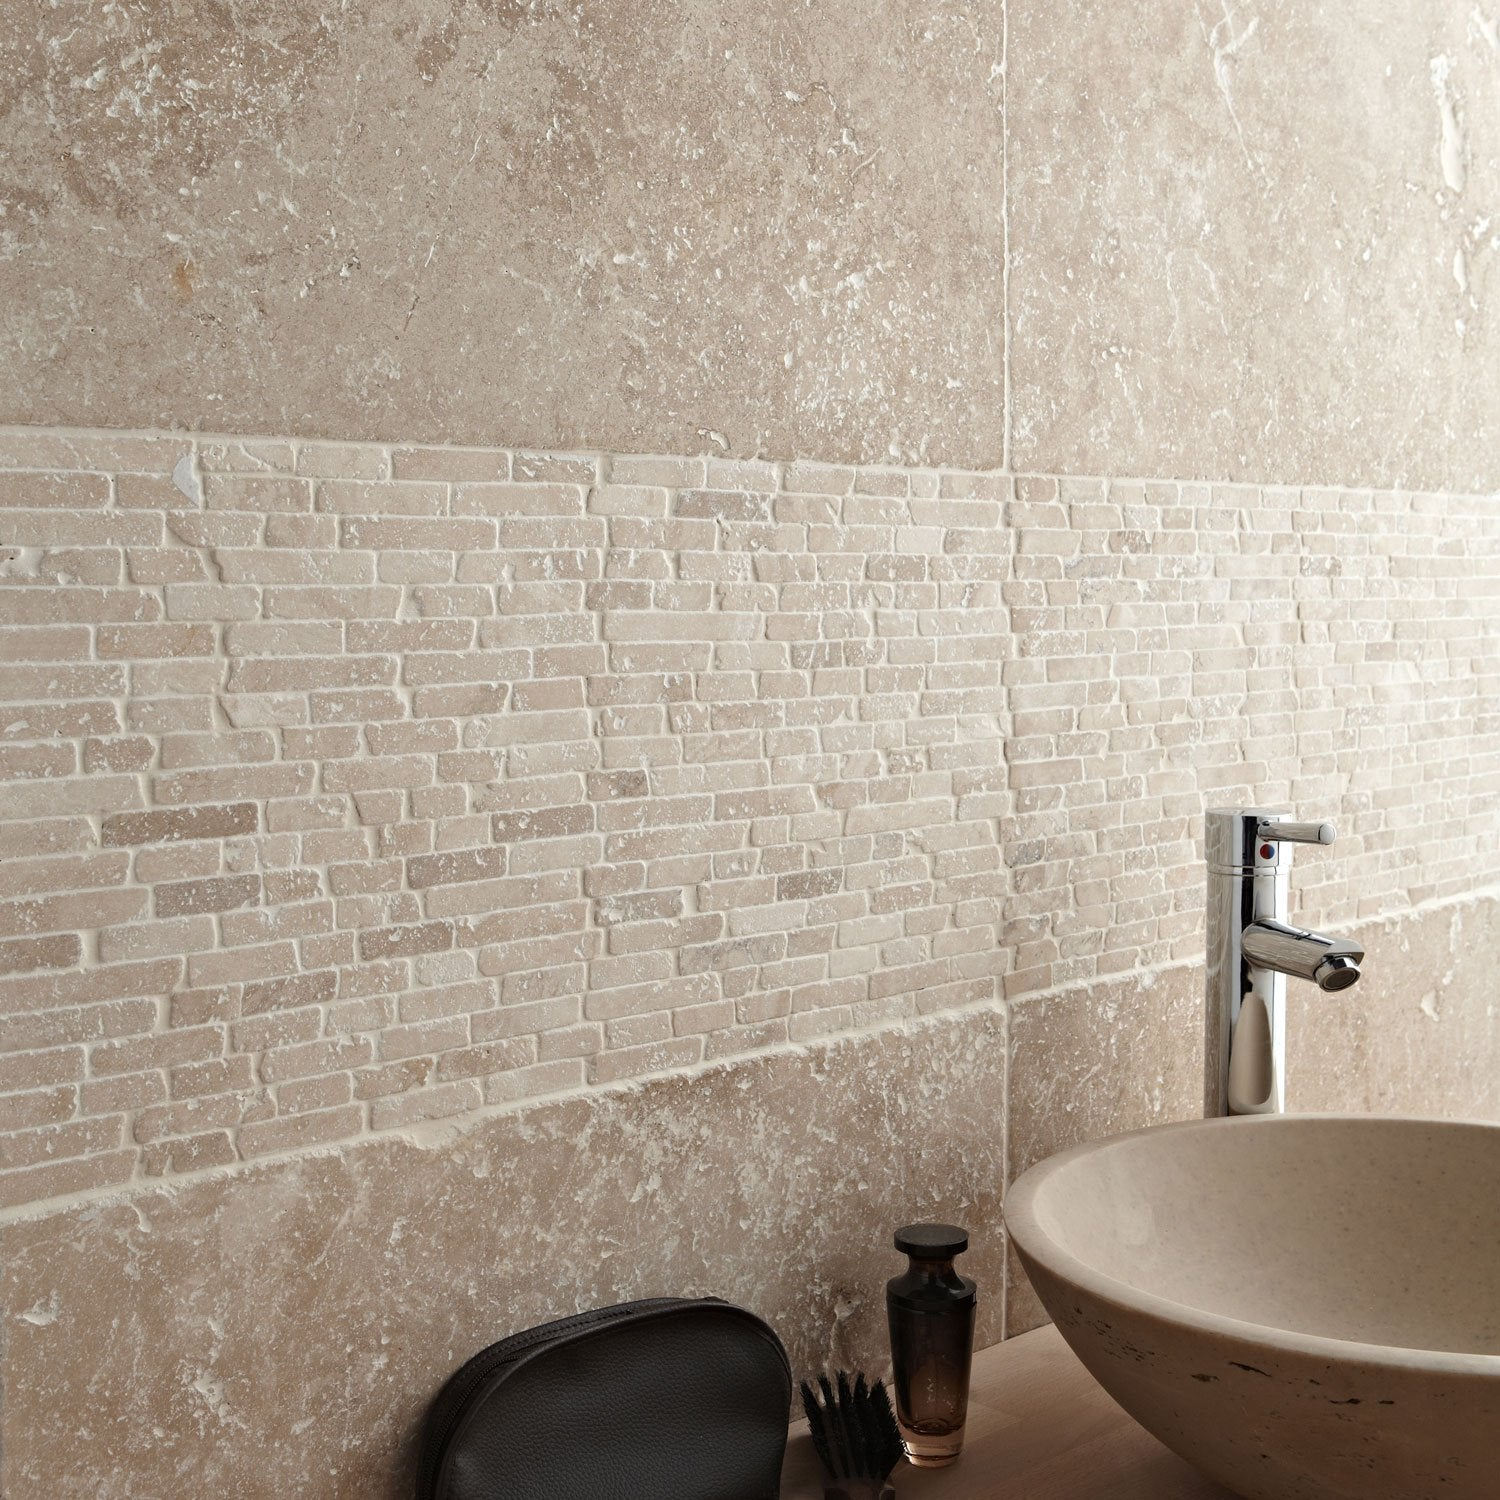 Travertin sol et mur beige effet pierre travertin x for Carrelage des suds